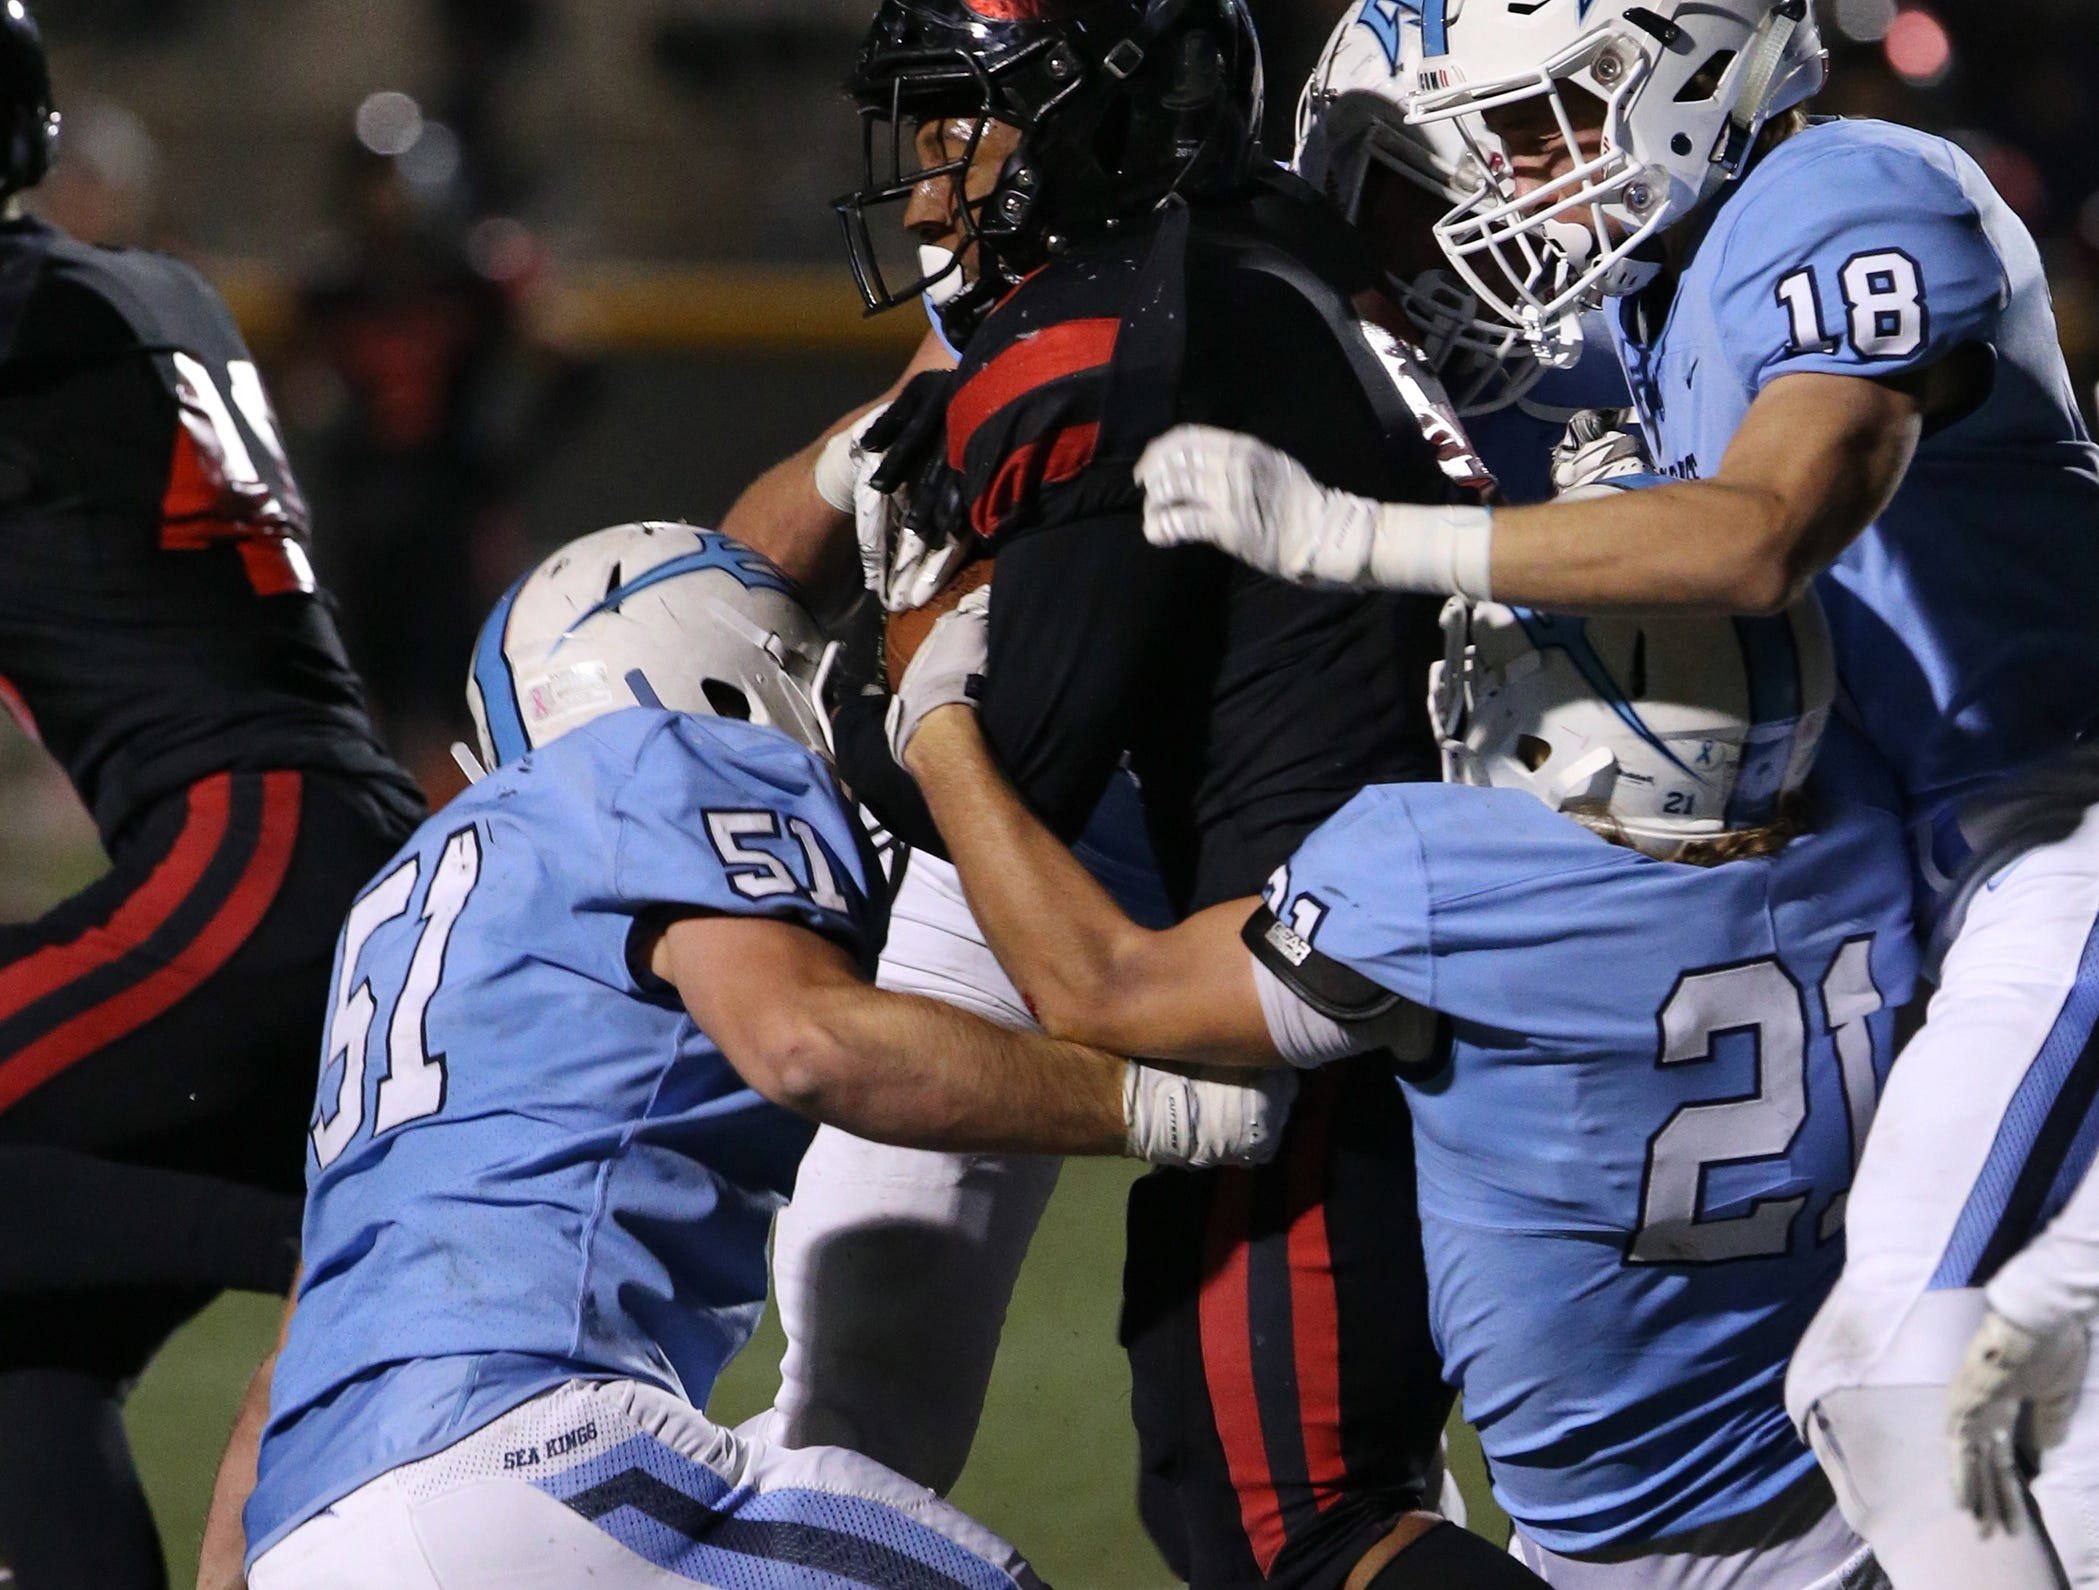 Corona del Mar's Tristen Troutman, Franz Froehlich and Grant Byers try to bring down Grace Brethren's Lontrelle Diggs during during the CIF-SS Division 4 championship game Saturday night at Royal High.